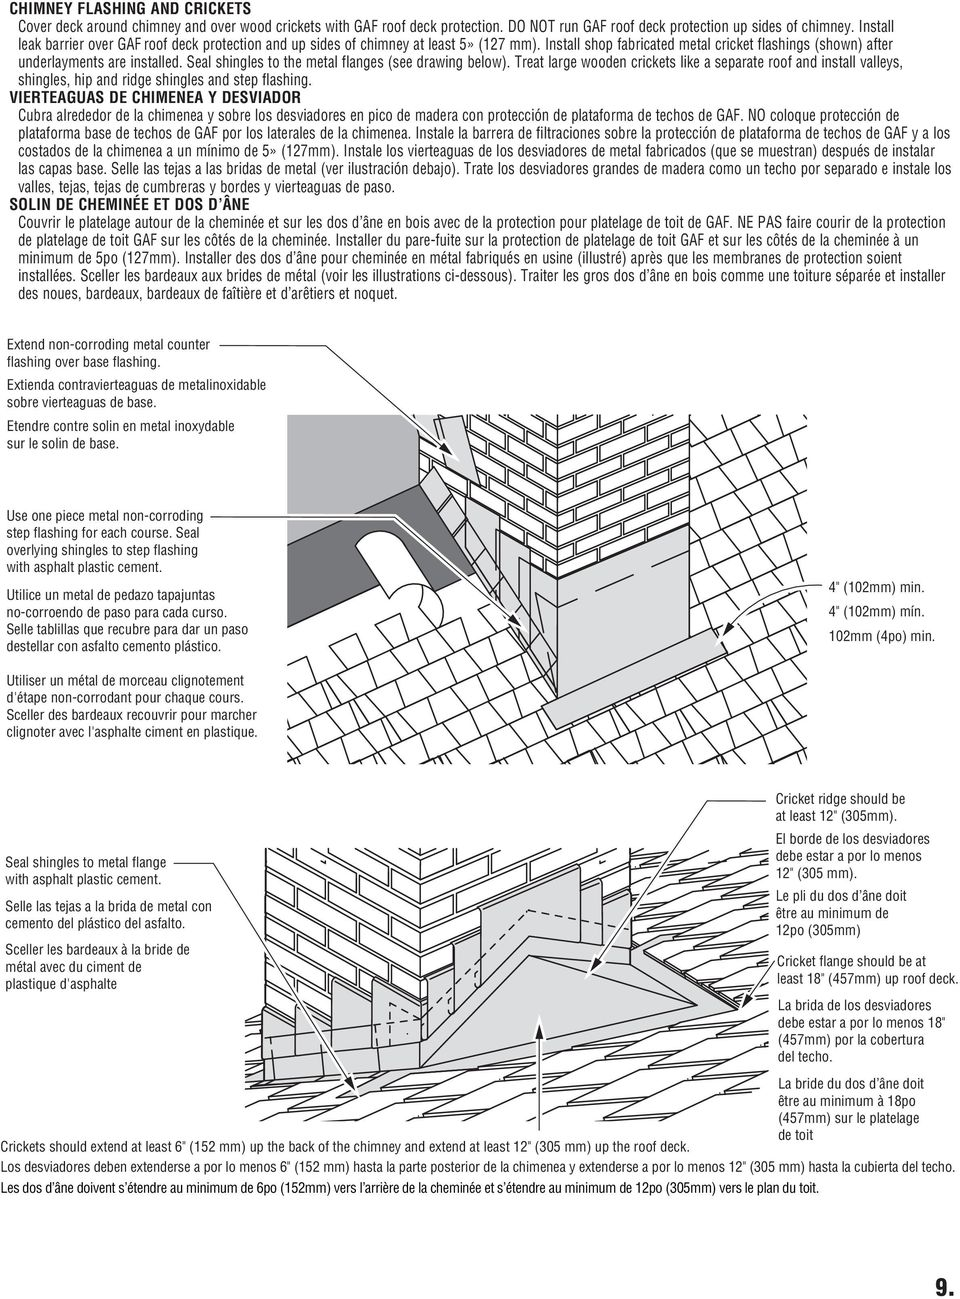 Seal shingles to the metal flanges (see drawing below). Treat large wooden crickets like a separate roof and install valleys, shingles, hip and ridge shingles and step flashing.